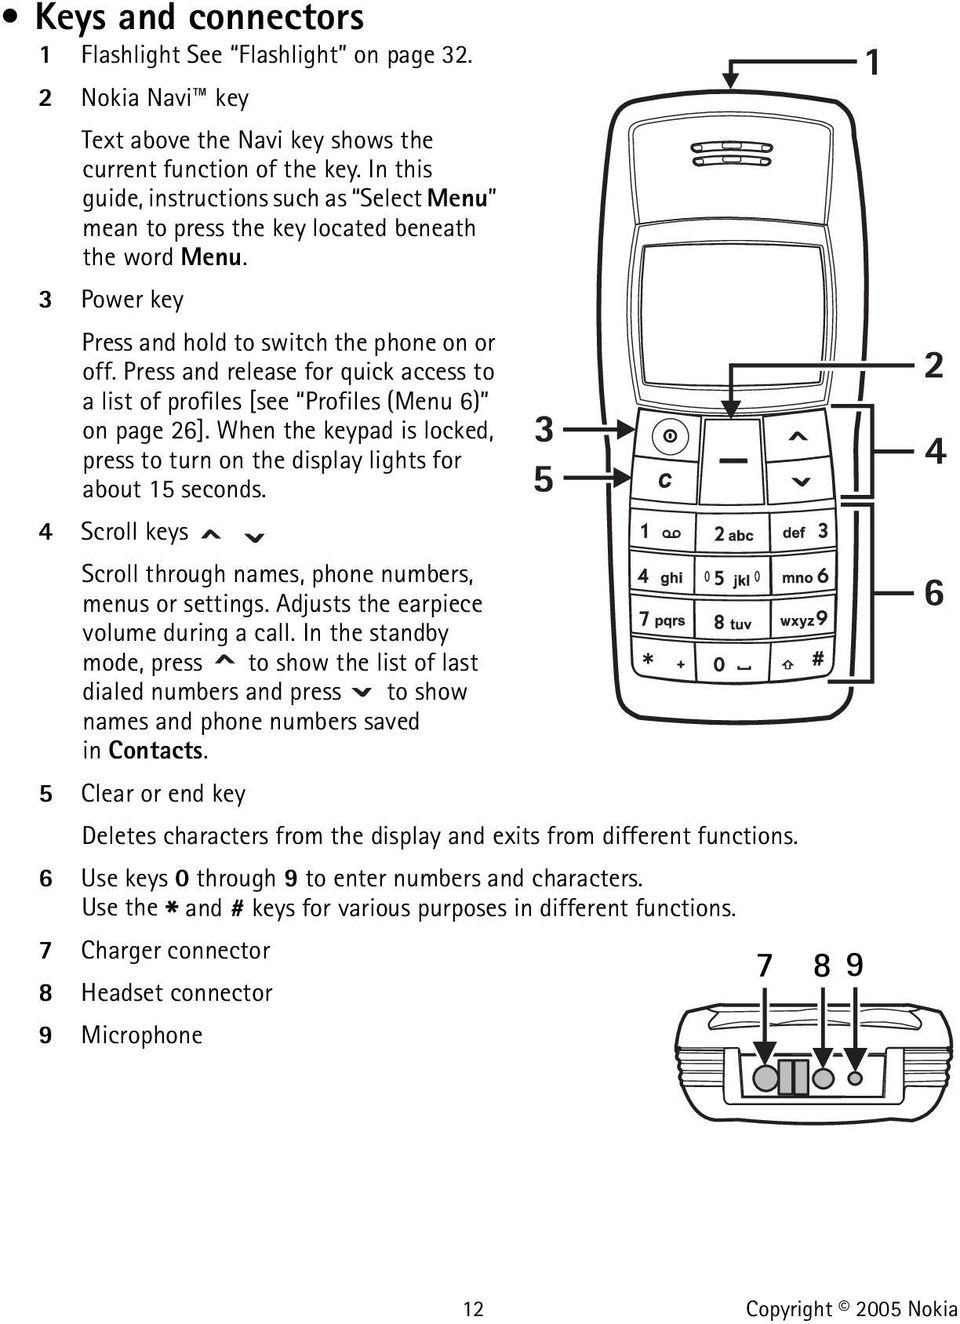 Press and release for quick access to a list of profiles [see Profiles (Menu 6) on page 26]. When the keypad is locked, press to turn on the display lights for about 15 seconds.